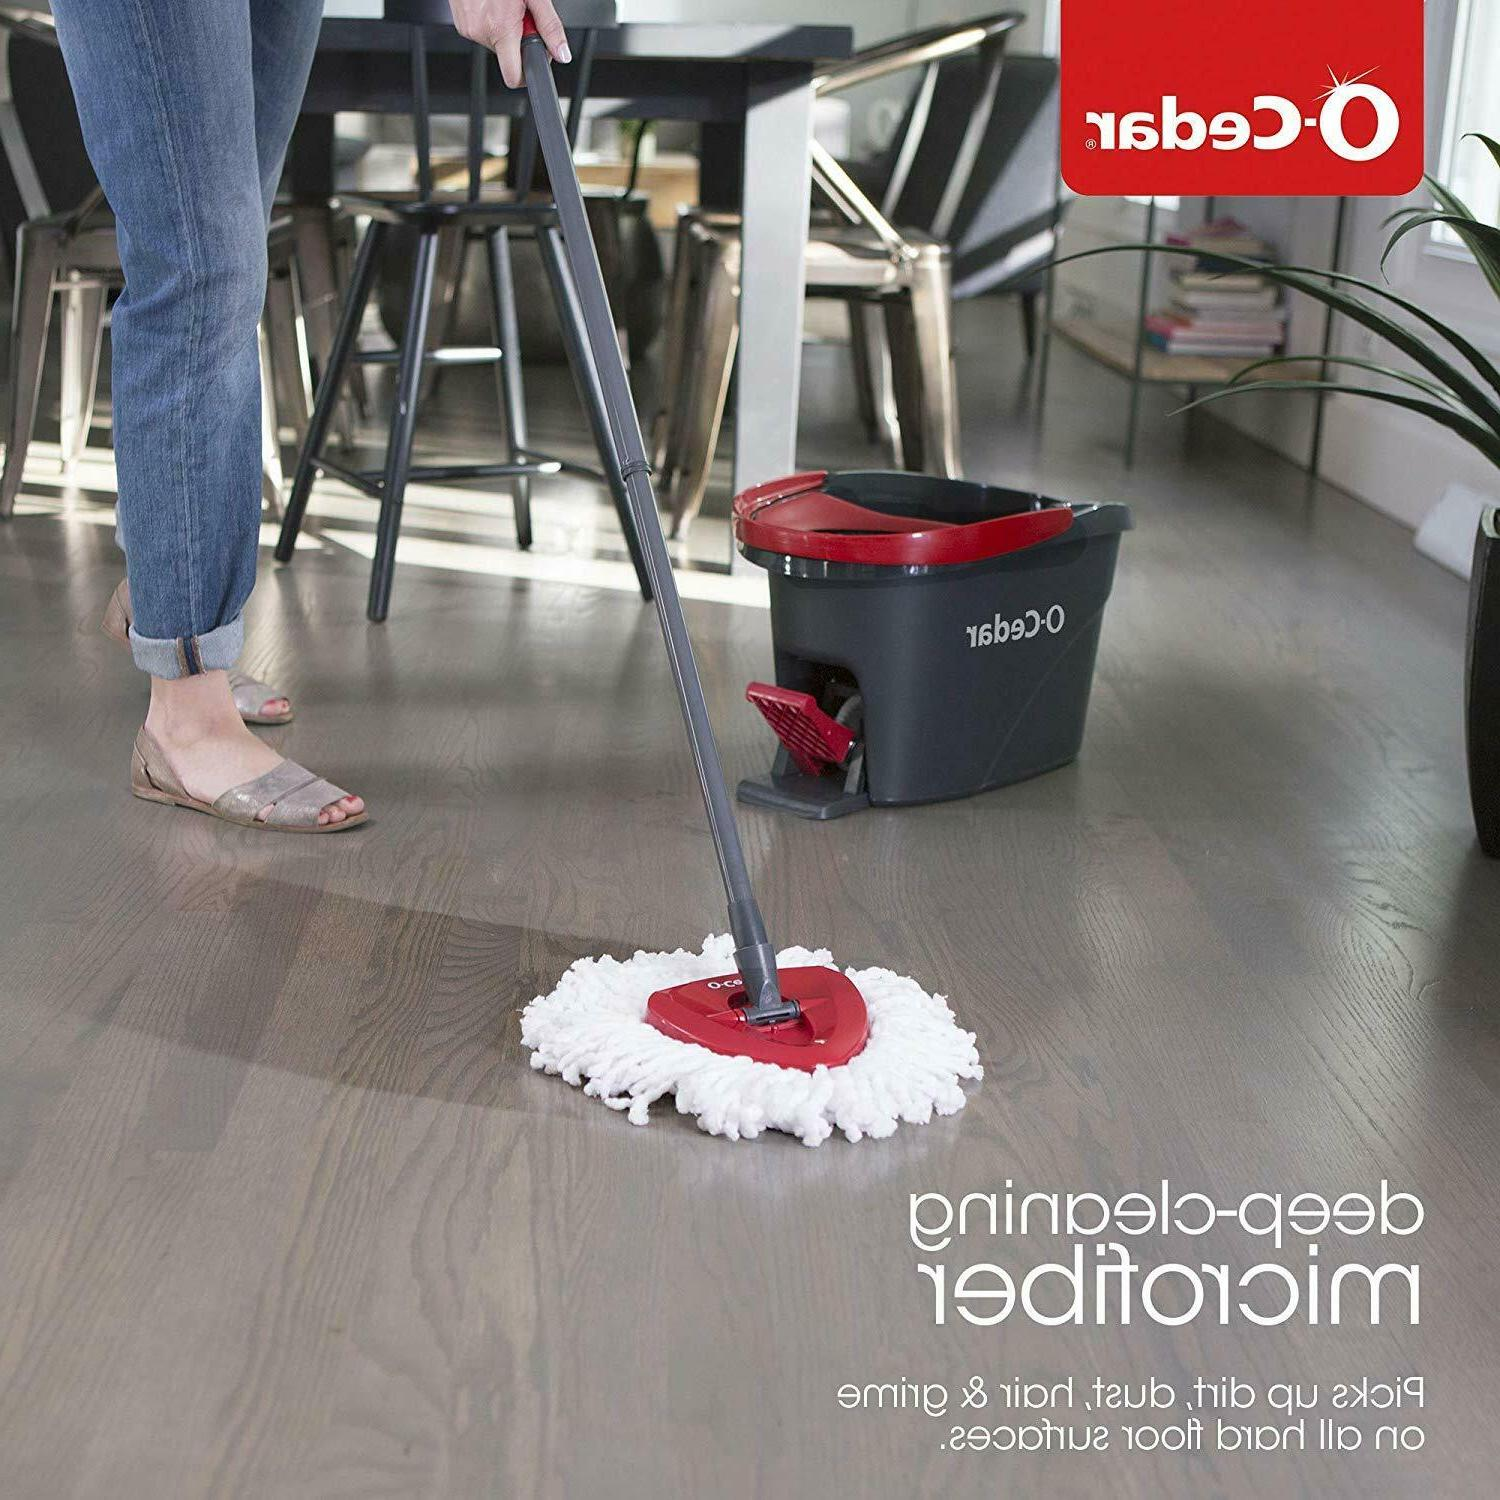 O-Cedar Spin Mop and Cleaning Floors